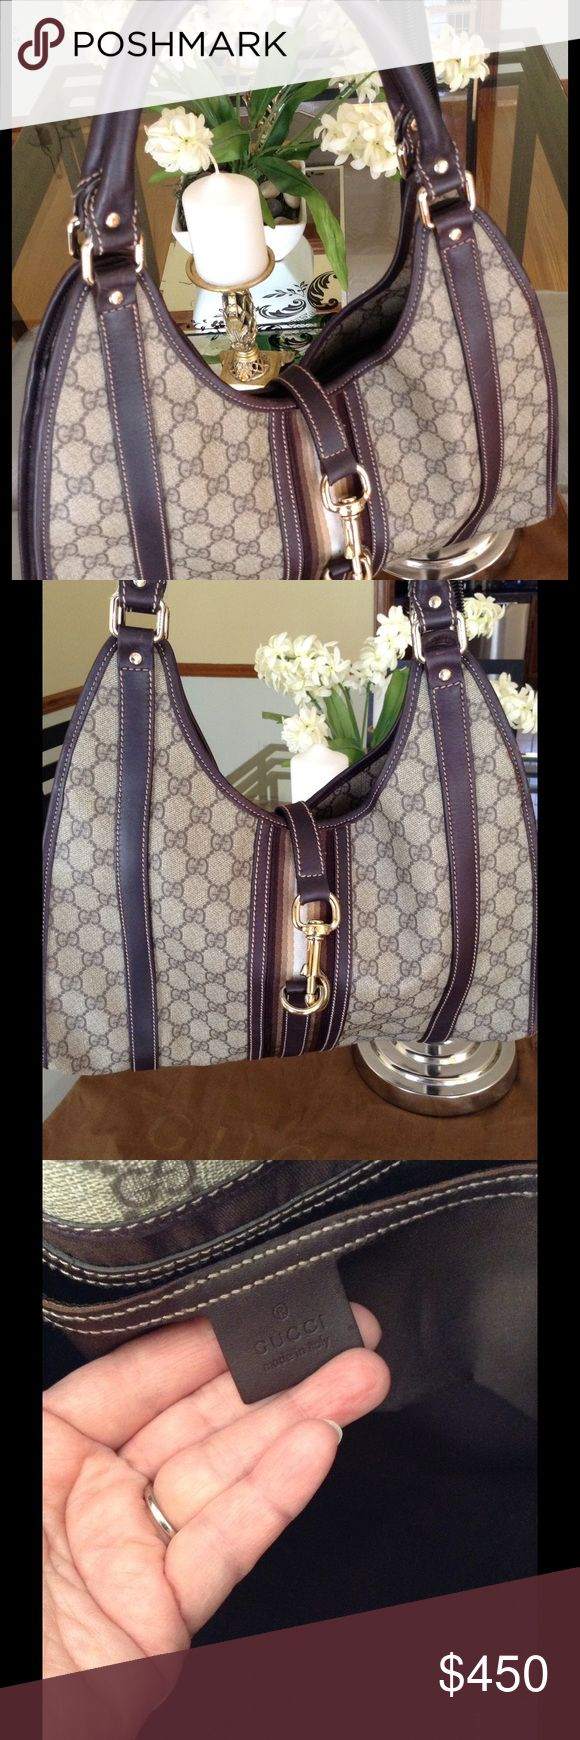 """GUCCI Authentic Bardot Handbag Authentic GUCCI beige/ebony coated signature GG Bardot handbag. Features gold-tone hardware with """"GUCCI"""" logo. Dark brown leather trim accents with a top strap closure. Dark brown canvas inside with pocket. Includes GUCCI dust bag. Dimensions are 15 x 12 x 4. Straps are 10"""" drop approx. Normal wear. Gucci Bags Hobos"""